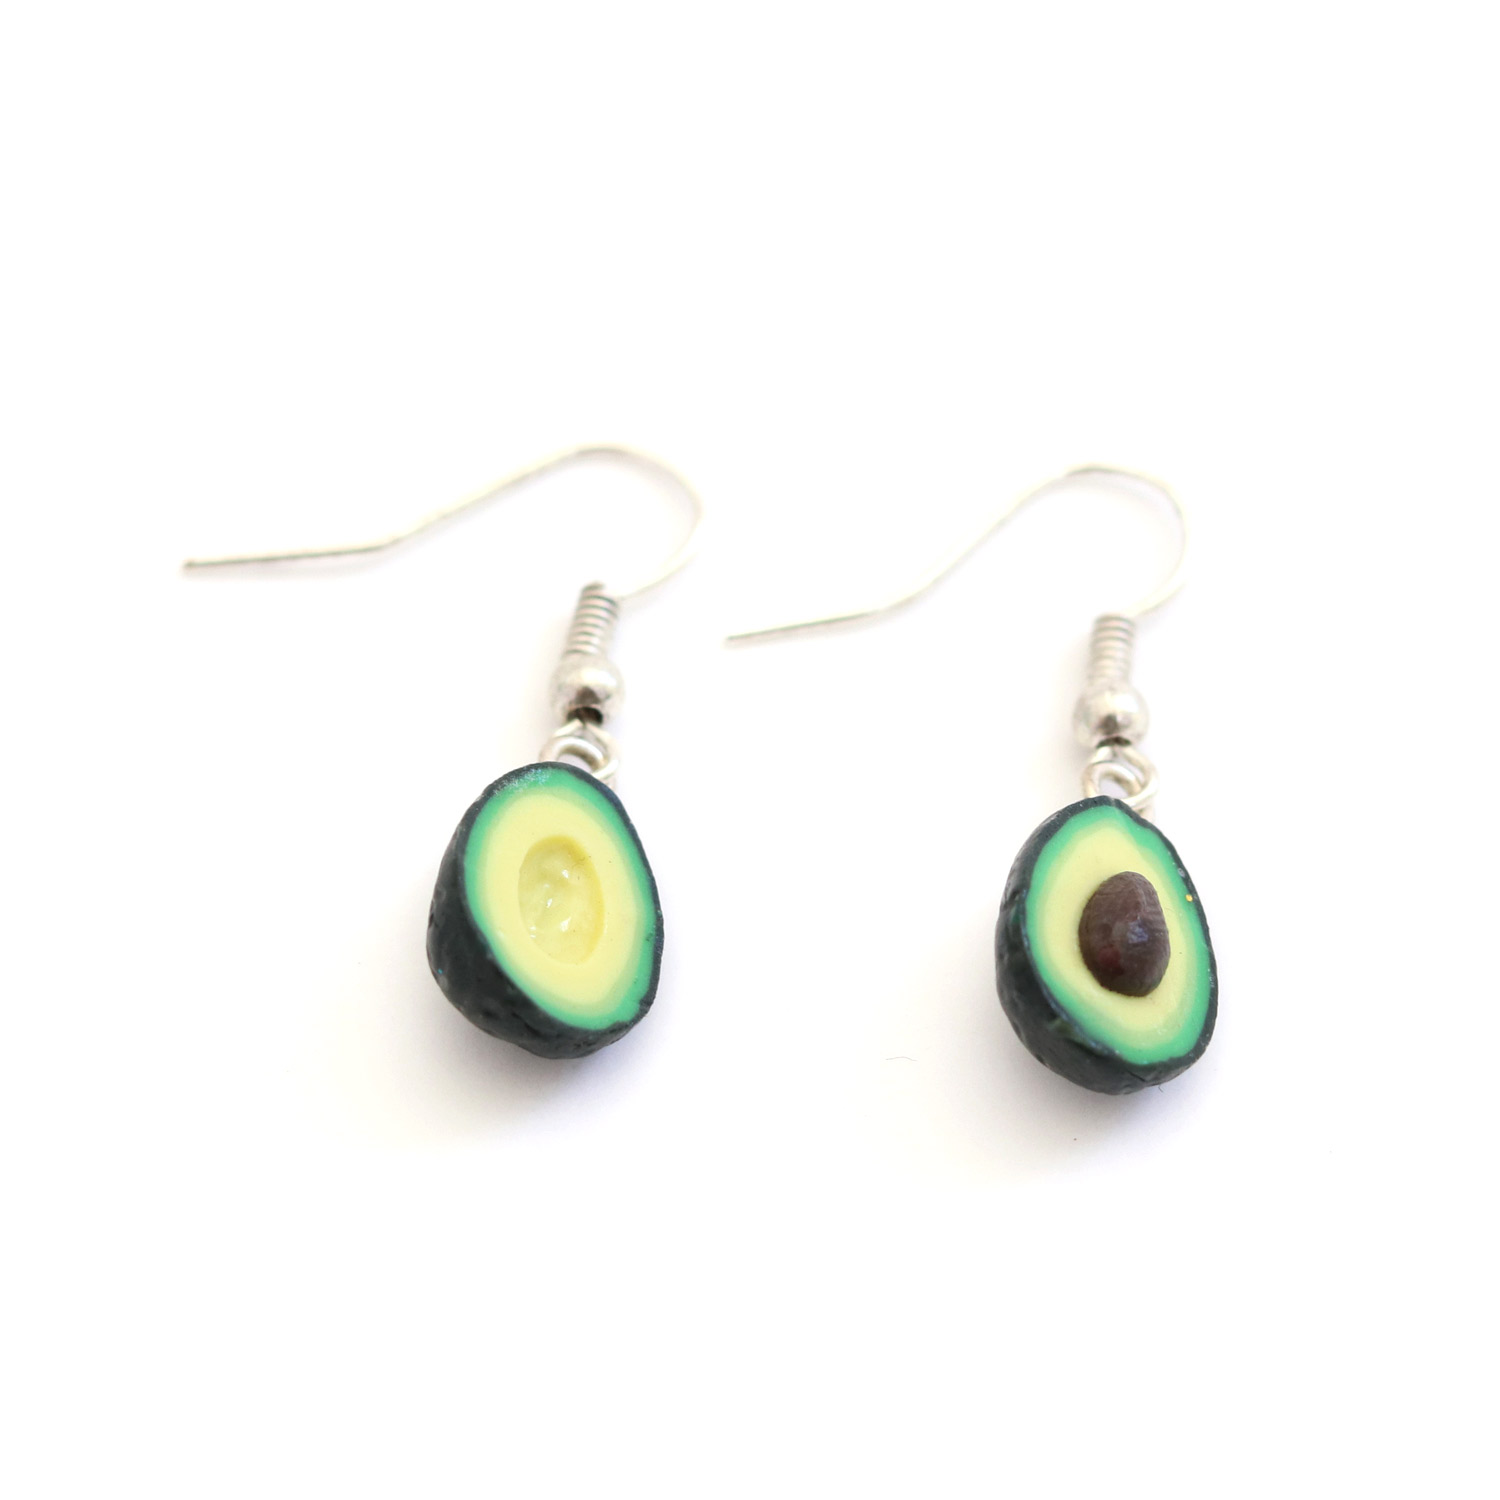 Avocado Dangly earrings